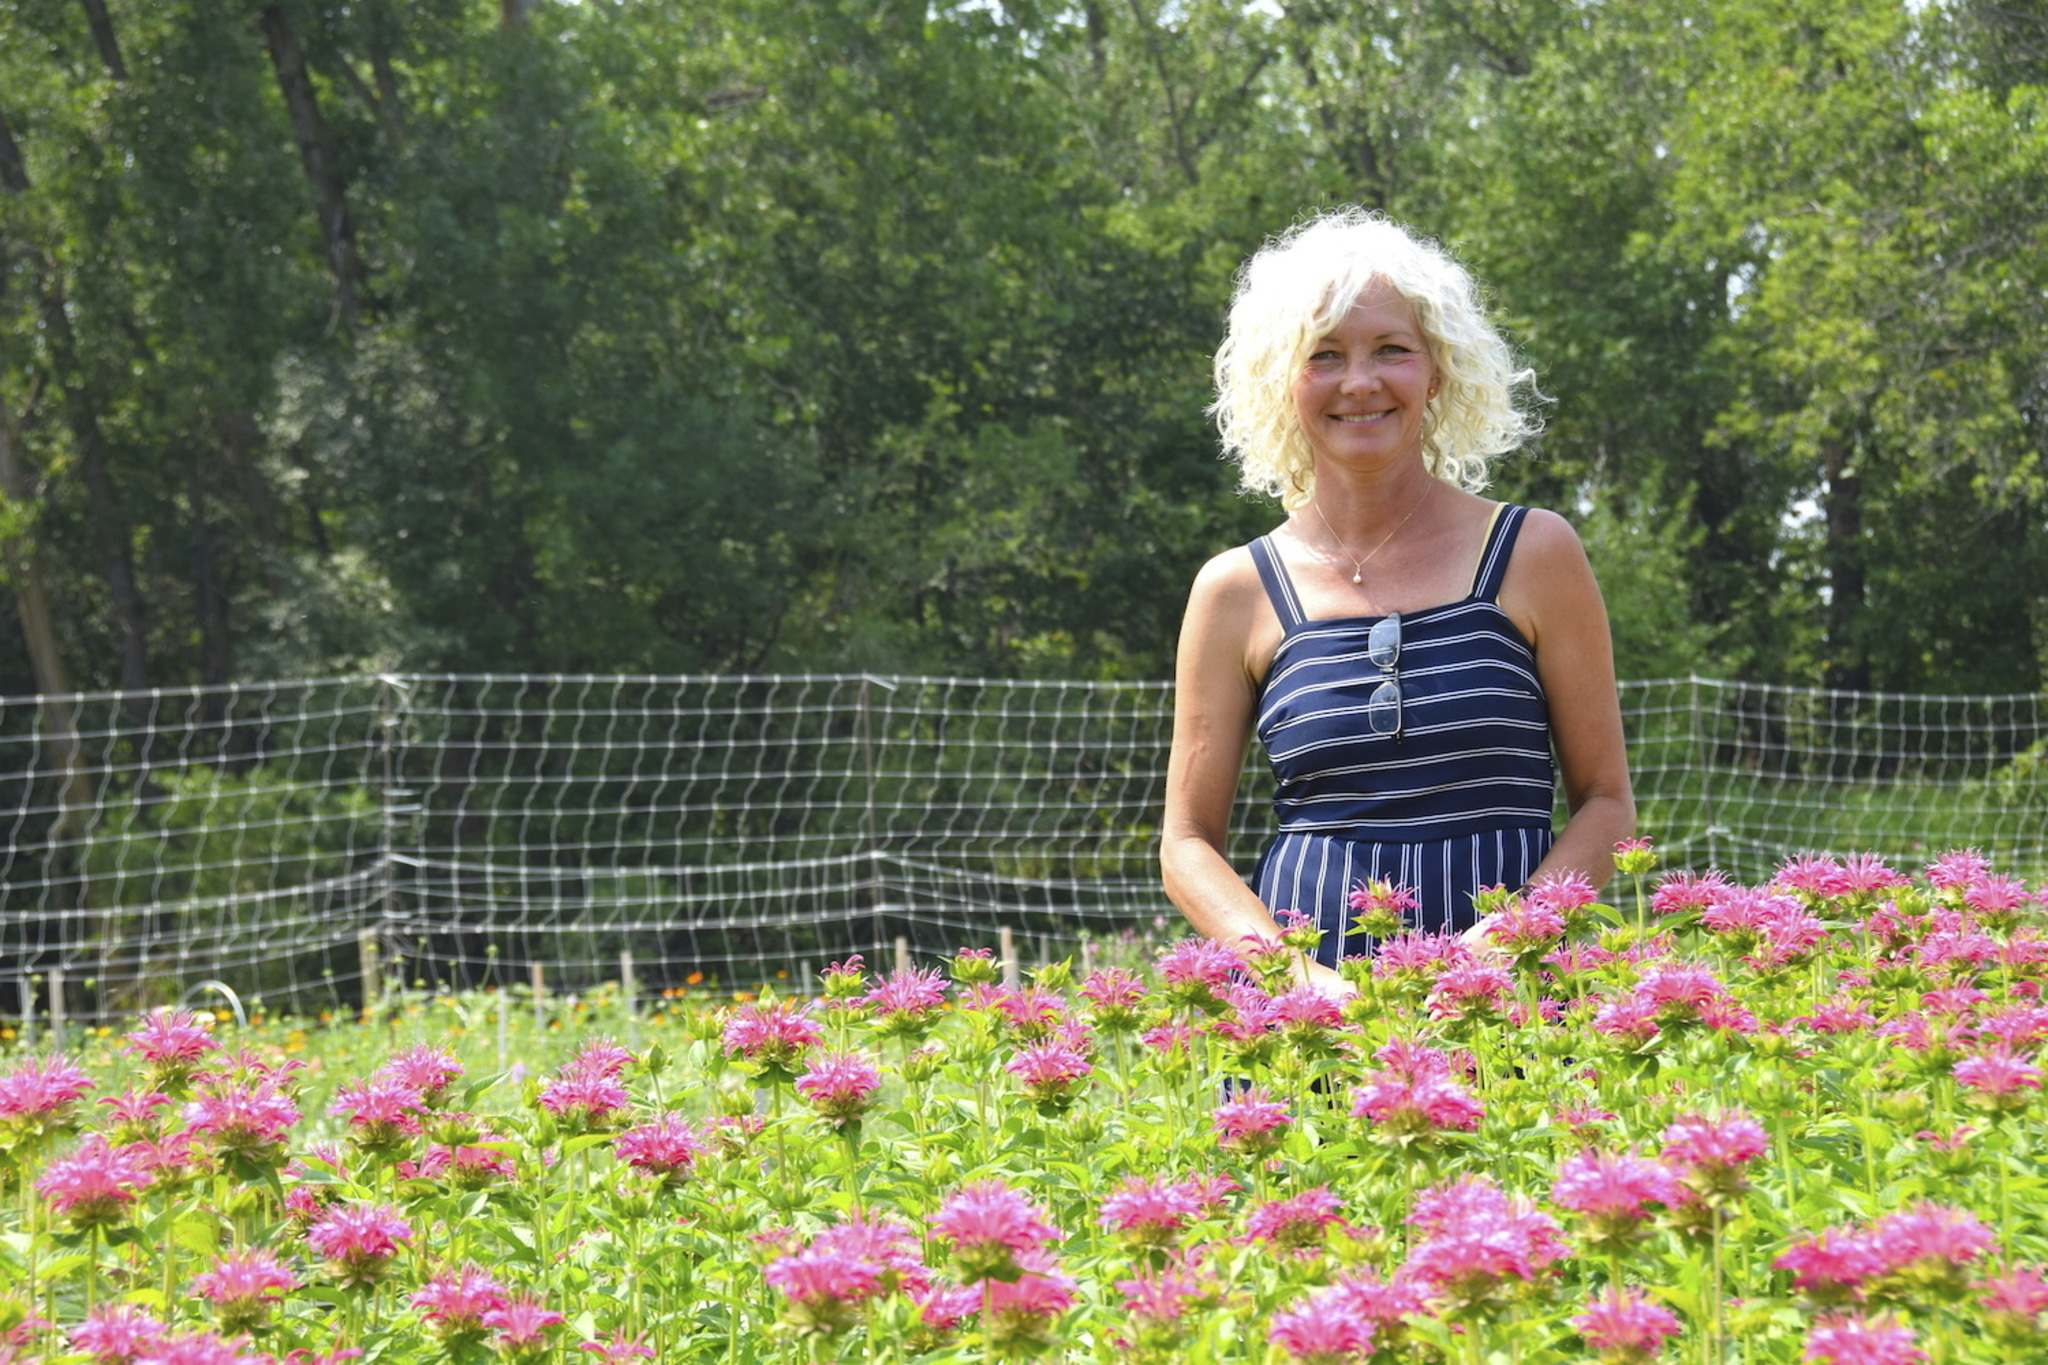 The gardens can be a place of quiet contemplation, says Miss Millie's Flower Farm owner Jodi Friesen. Plus you get to go home with an armful of blooms.</p>